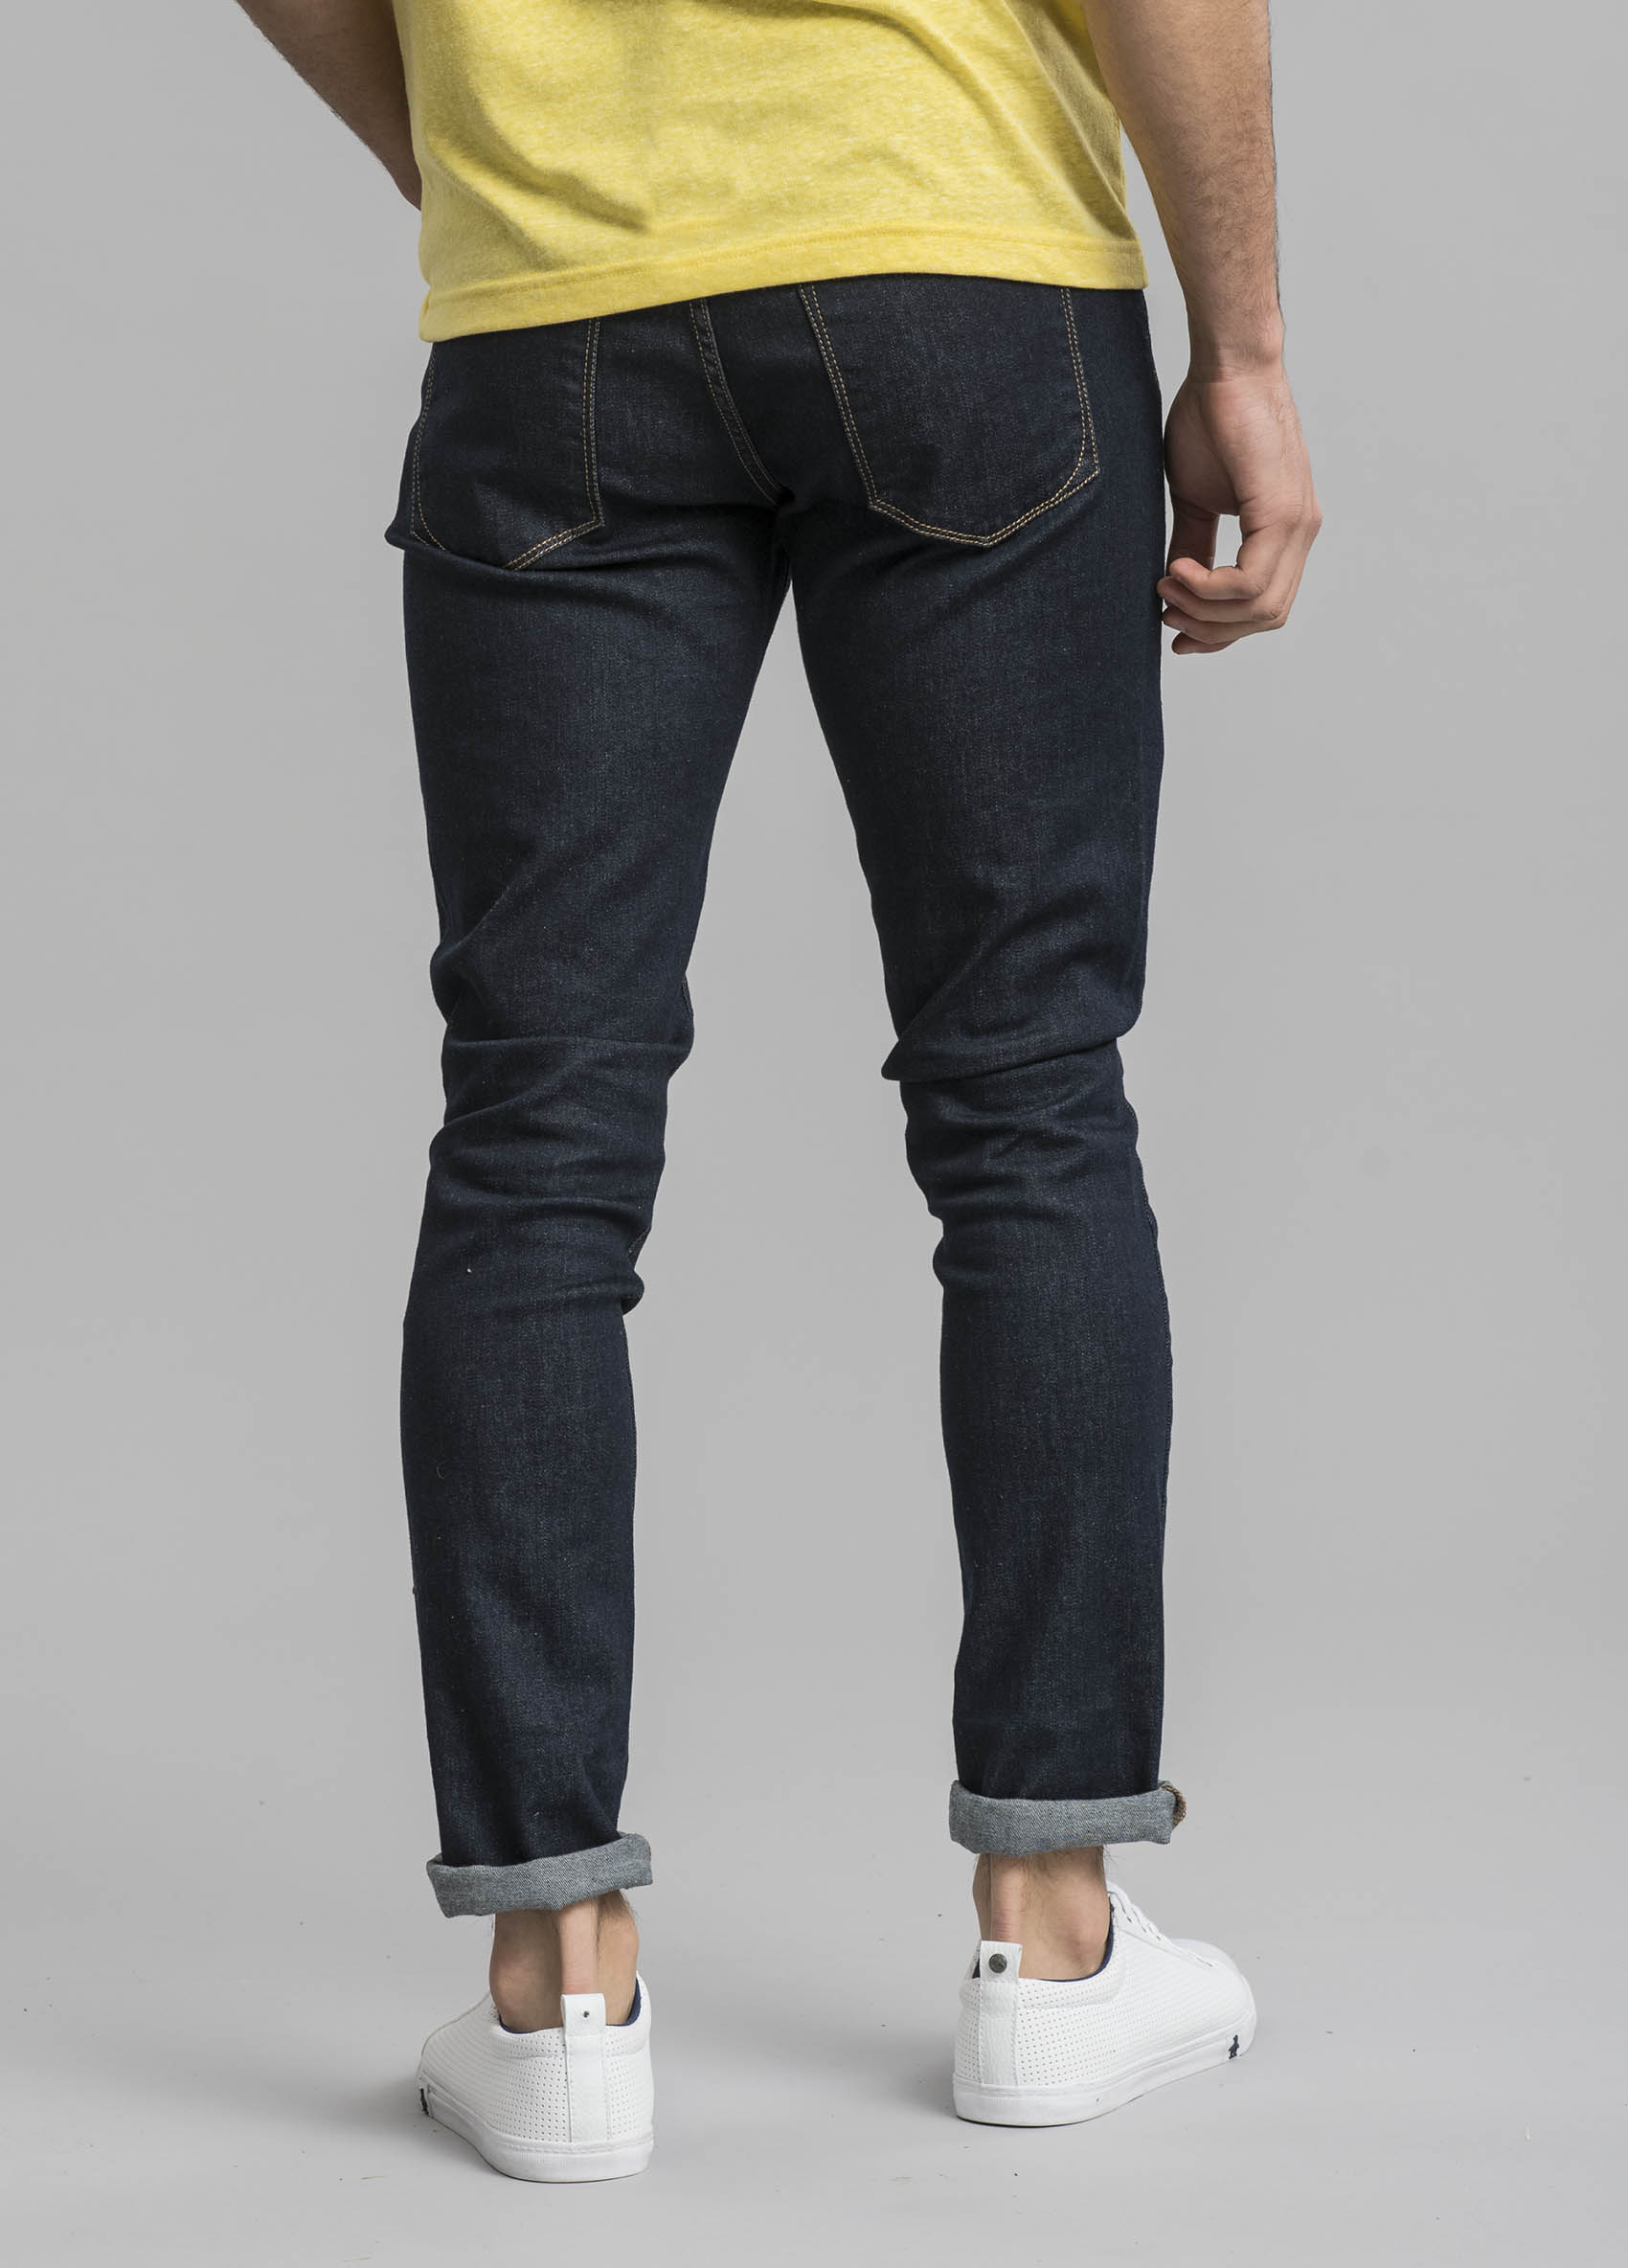 penguin_5-pkt-denim-skinny_54-13-2020__picture-11576